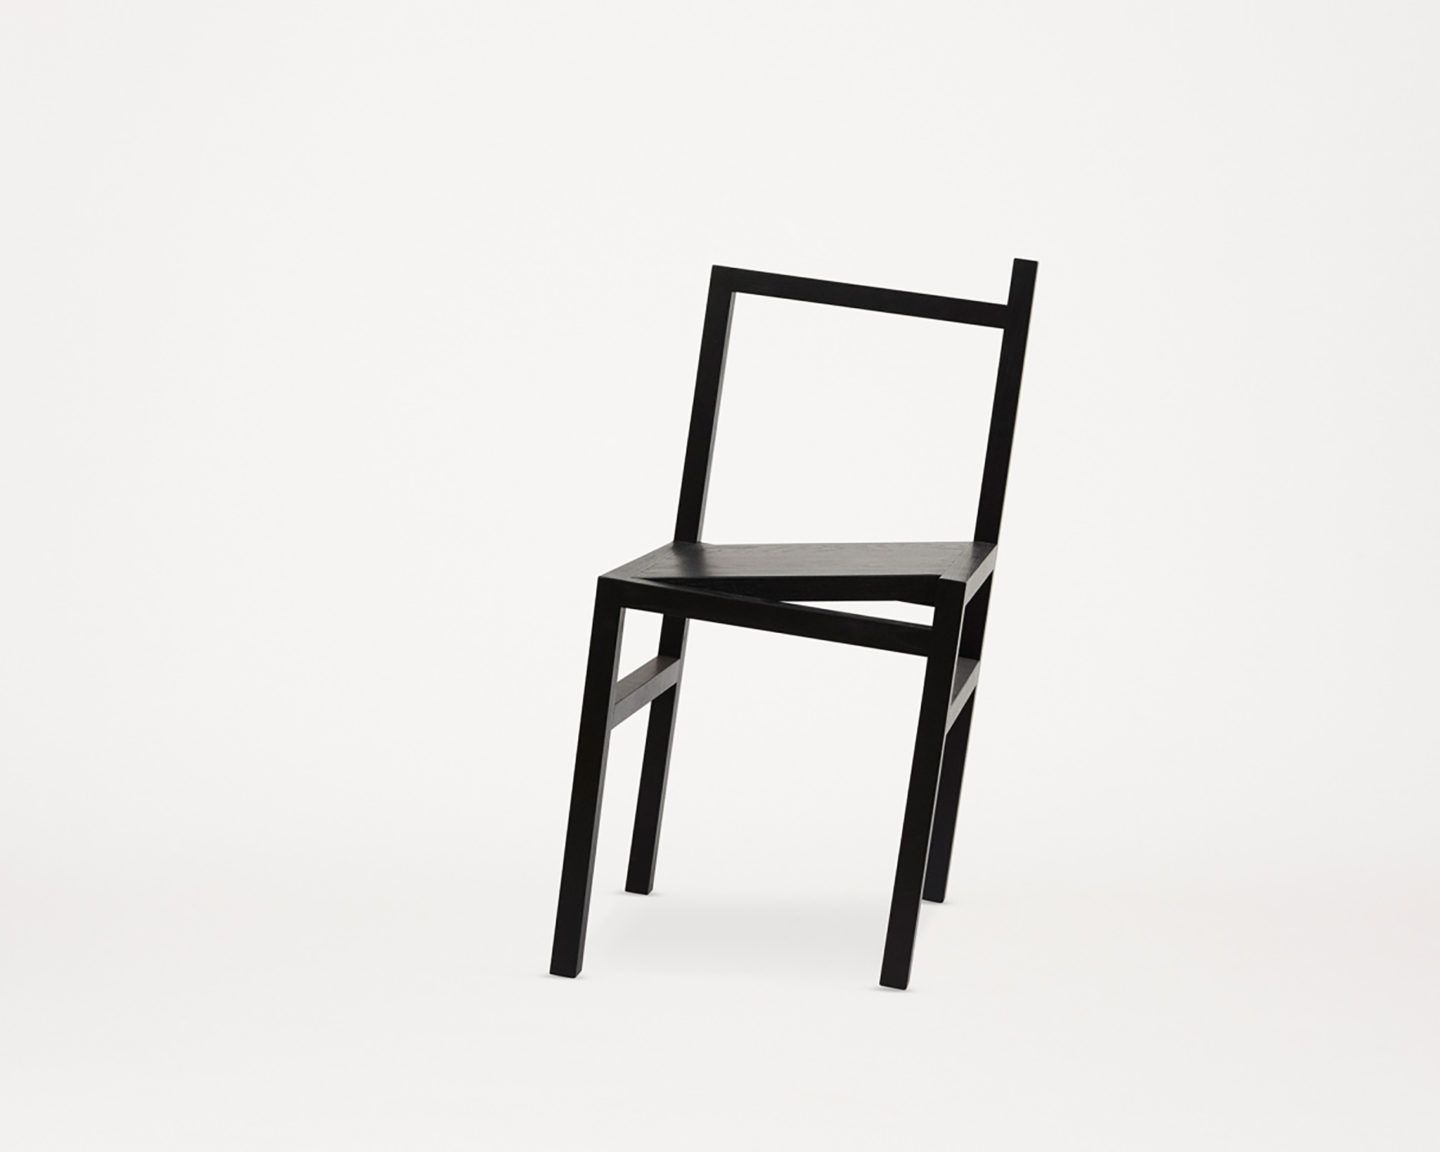 IGNANT-Design-Unusual-Chairs-4